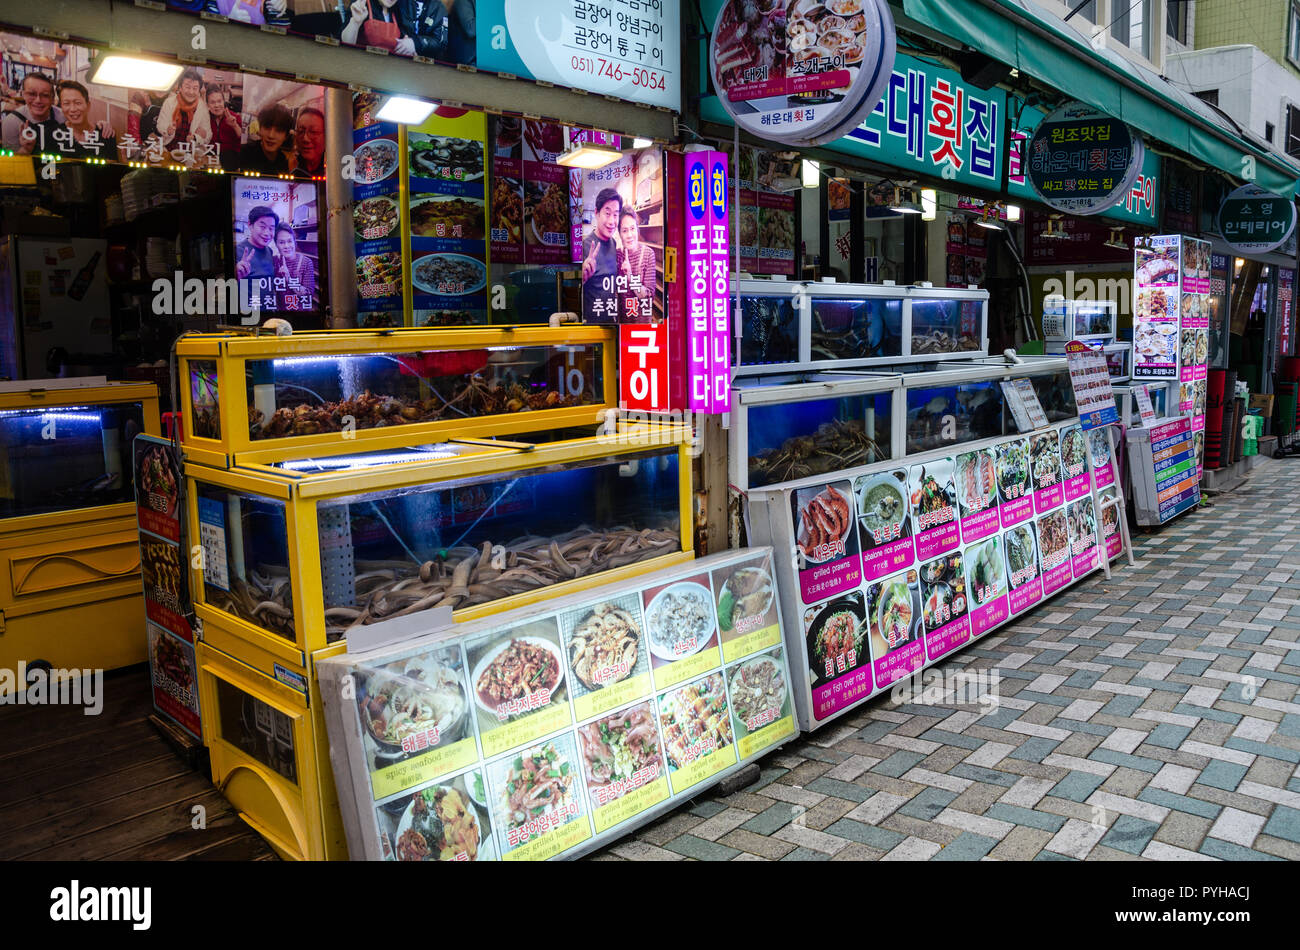 Tanks of fresh fish and seafood full of living fish and shellfish outside a restaurant in Haeundae, Busan in south Korea. - Stock Image